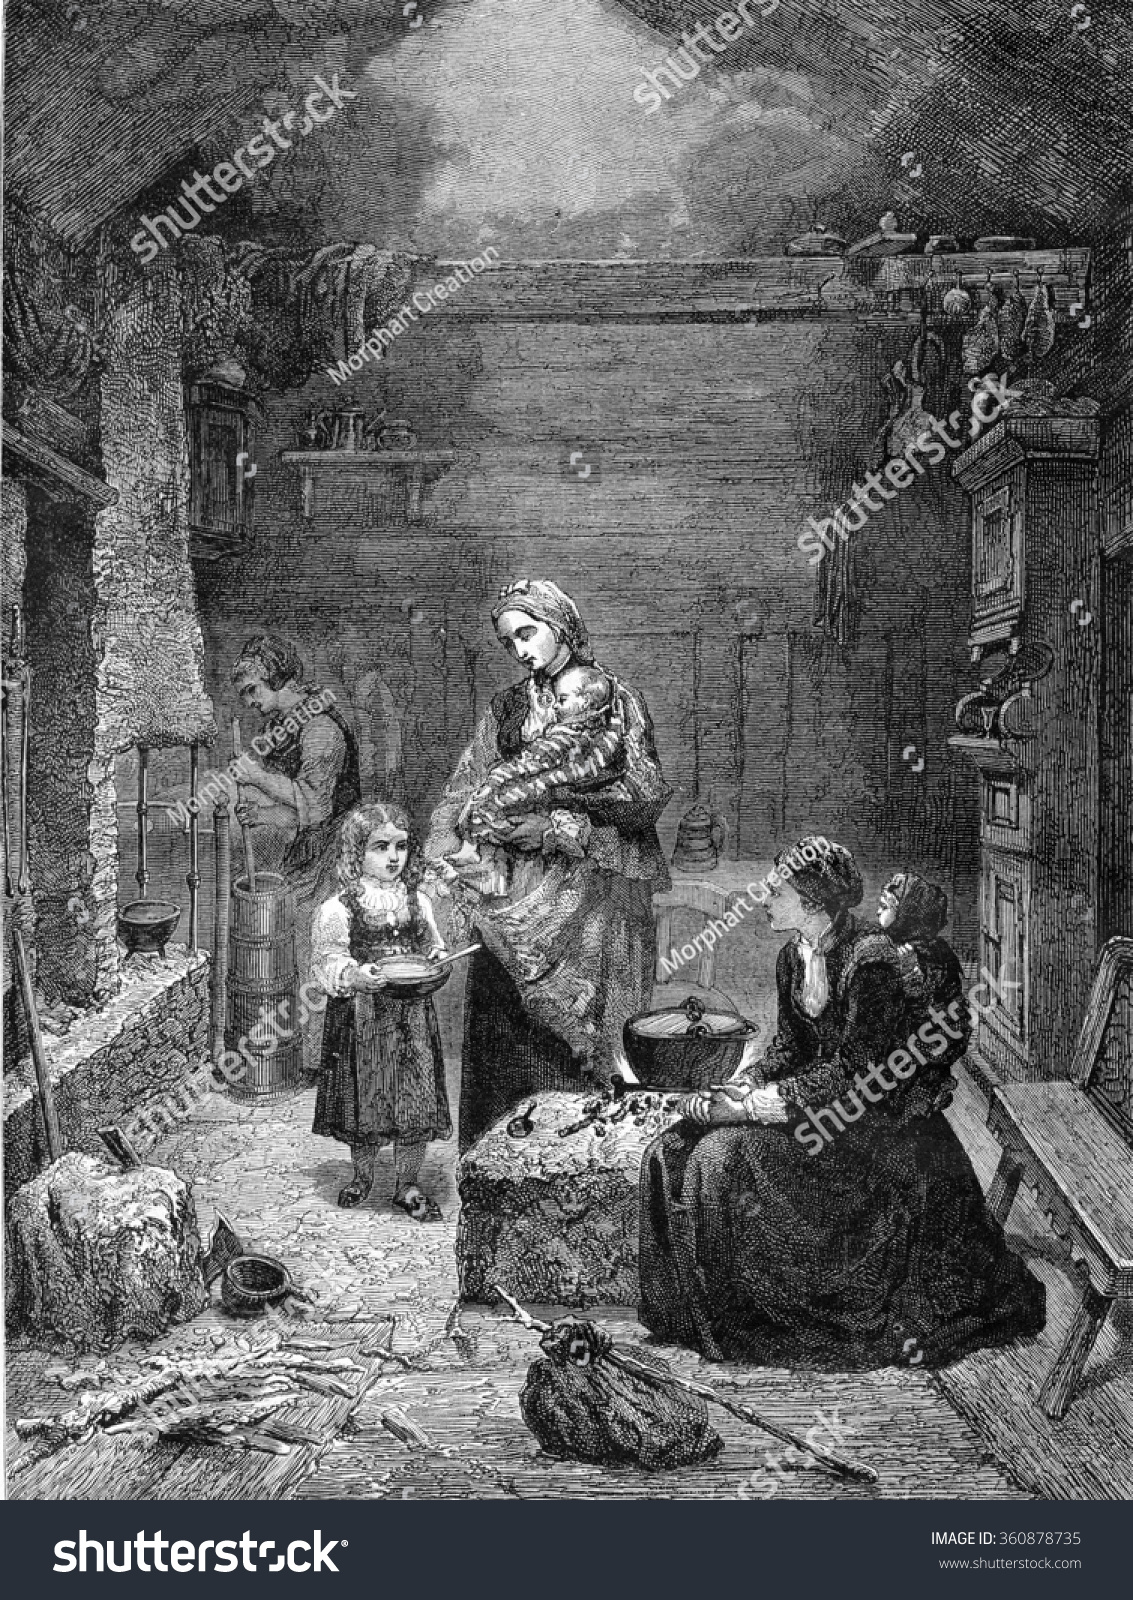 Home Magasin Interior Norwegian Home Vintage Engraved Illustration Stock